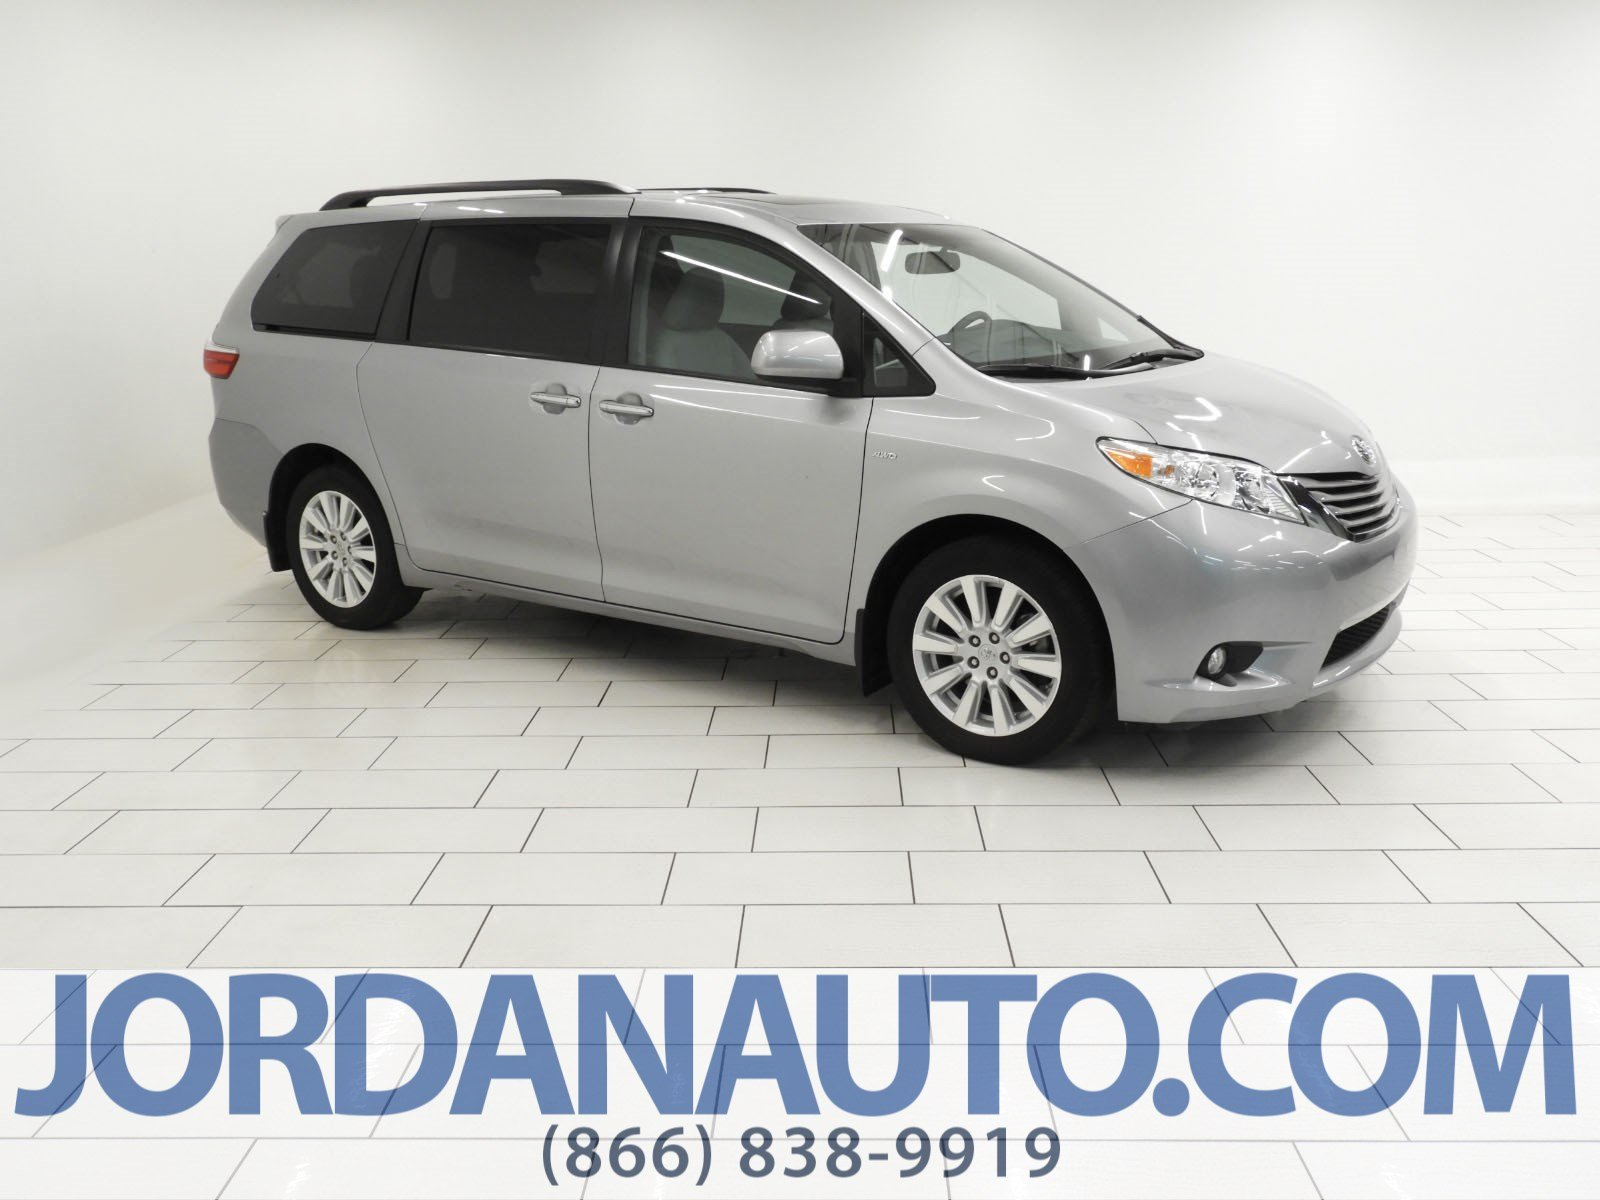 Toyota Sienna Service Manual: Parts location